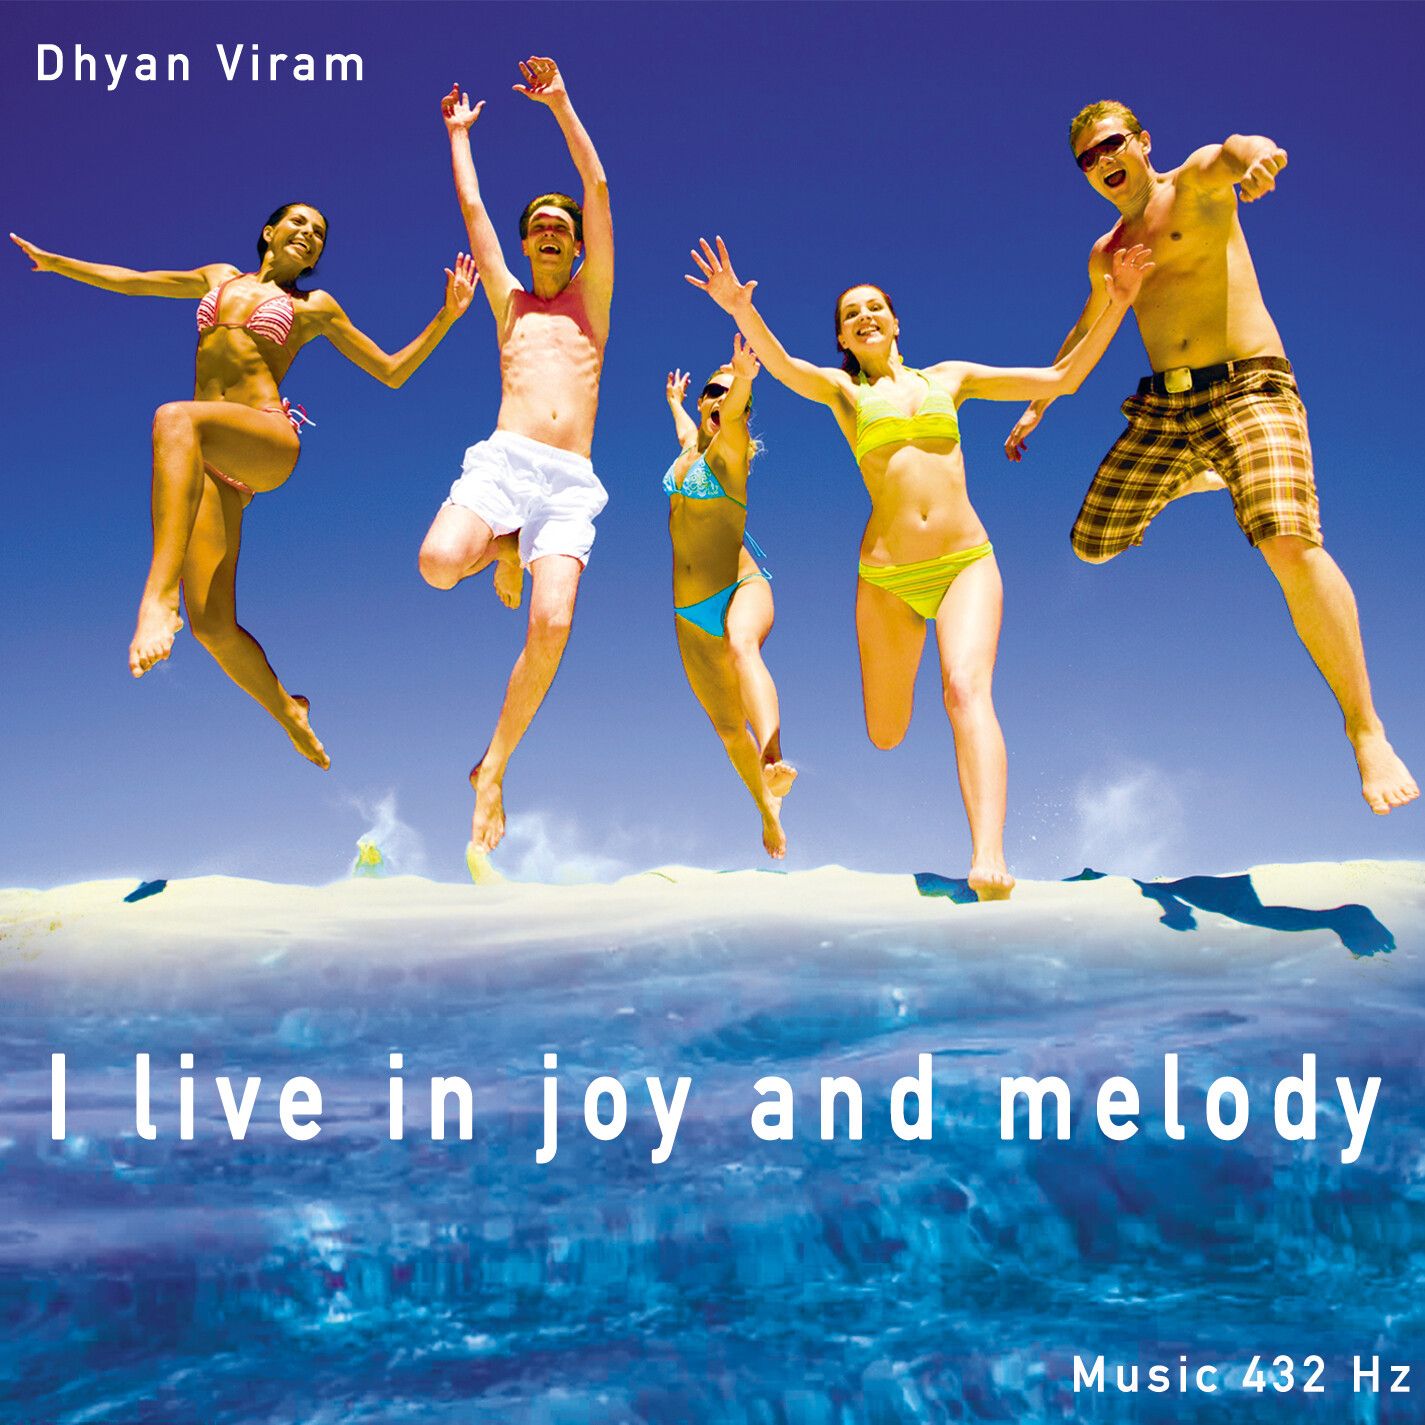 I live in joy and melody